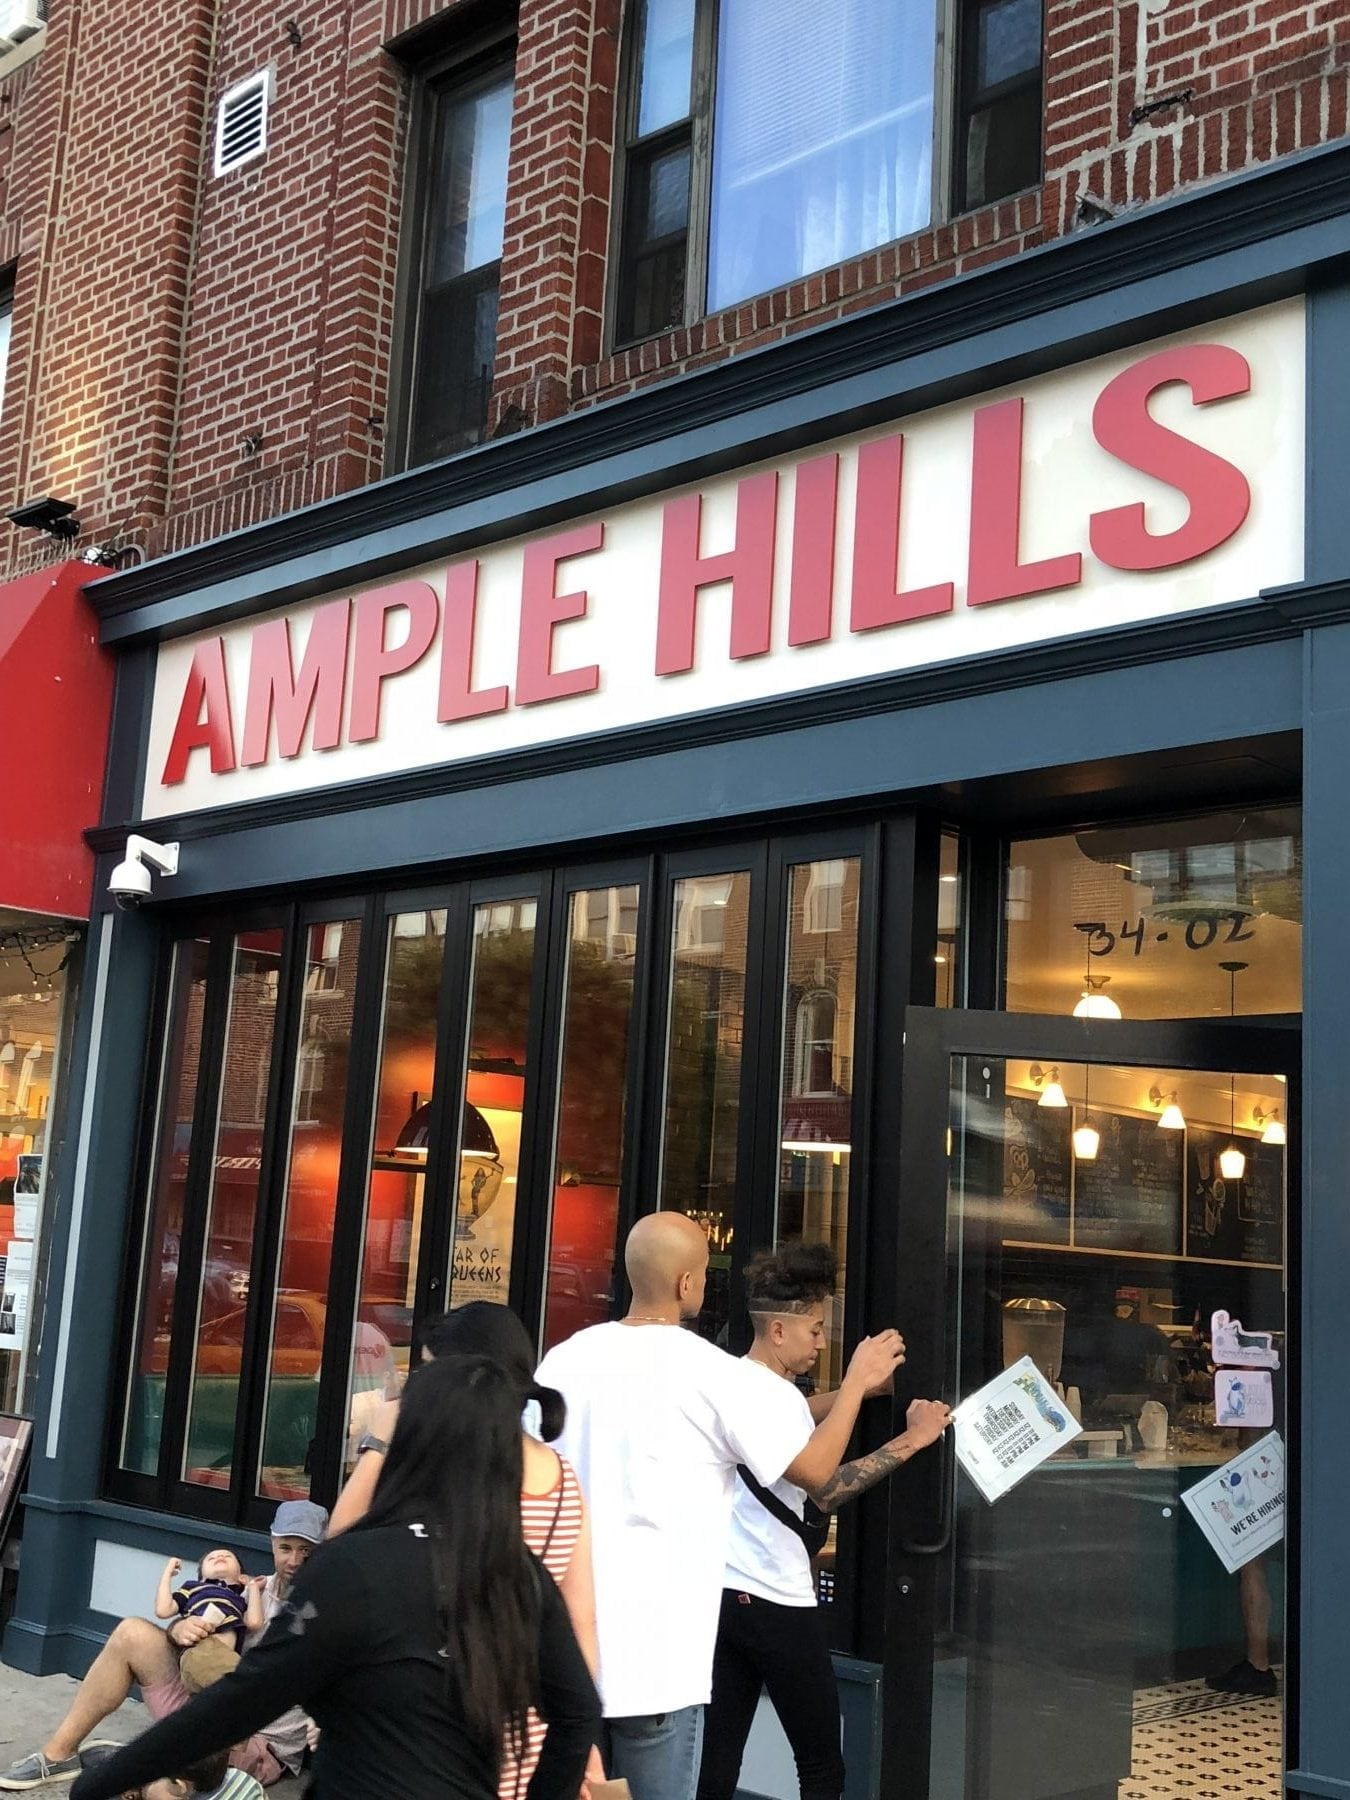 Ample Hill